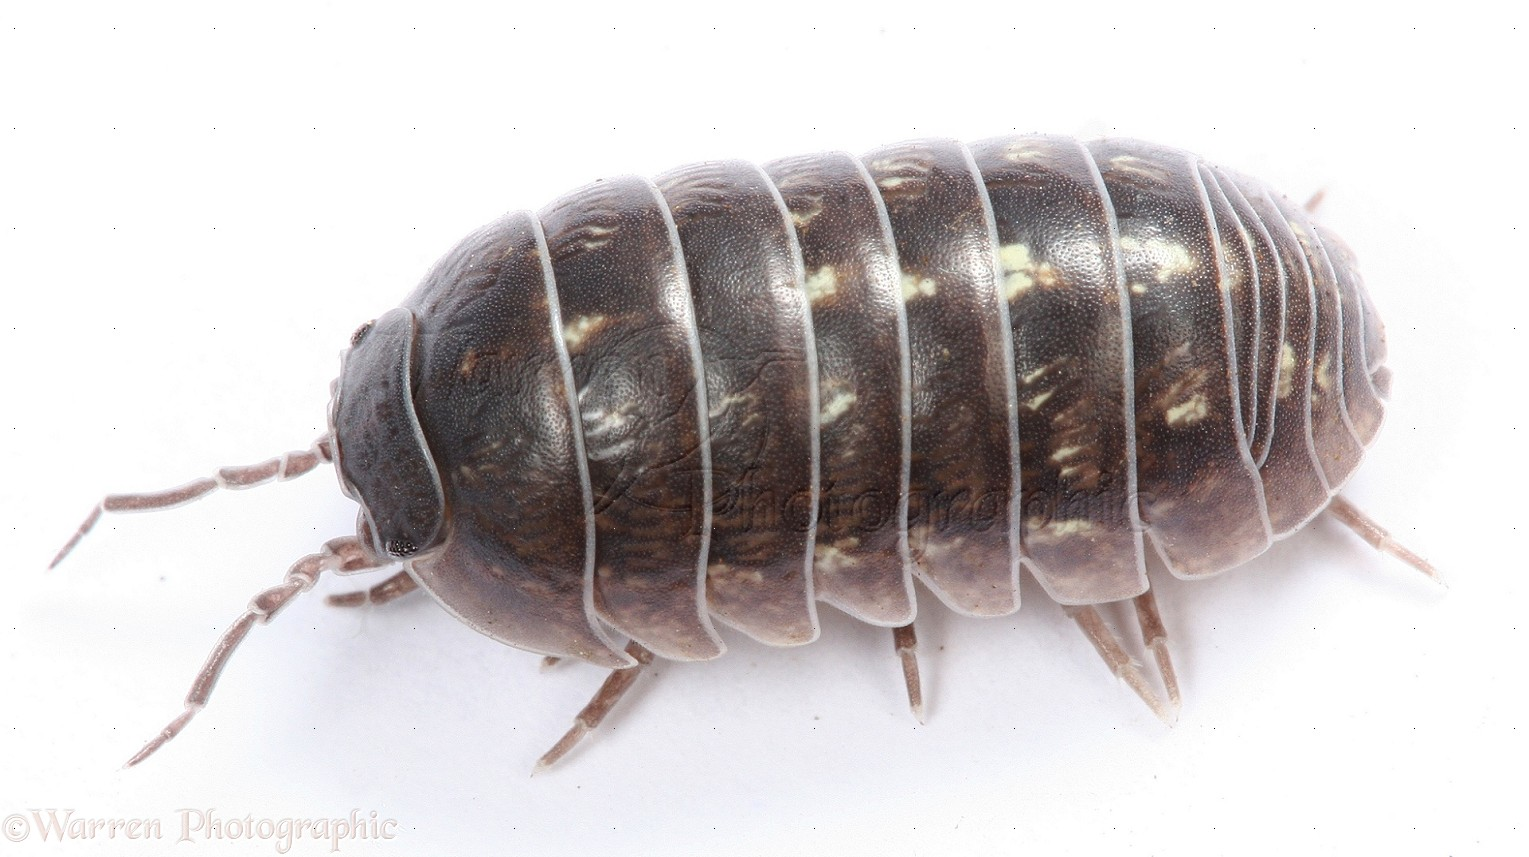 woodlice Problem woodlice or slaters are members of the crustacea family which also includes crabs, lobsters and shrimps there are about 35 species of woodlice in britain and some of these are of horticultural or agricultural significance, because they eat and damage plants.